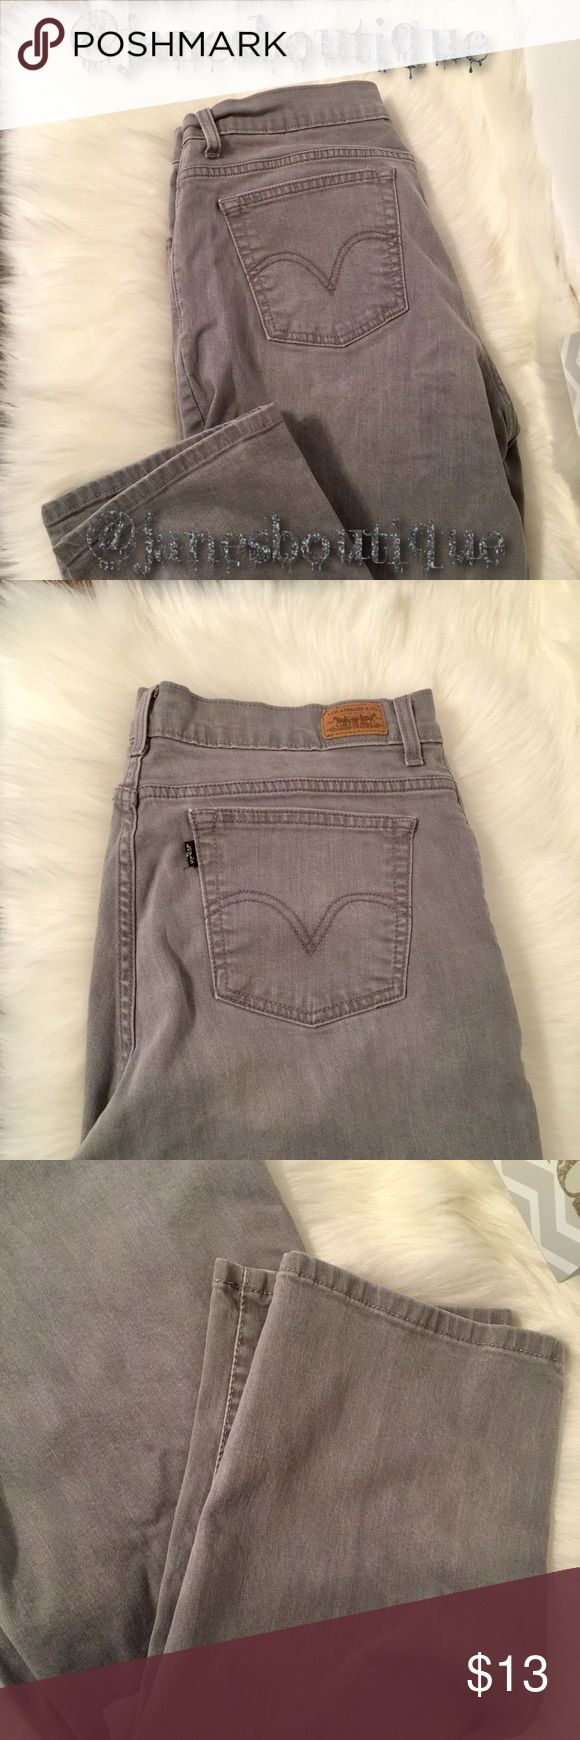 •Levi 550 Relaxed Tapered Jeans• Levi's 550 Gray wash Tapered jeans in size 16. Good used condition no stains, holes or rips. Levi's Jeans